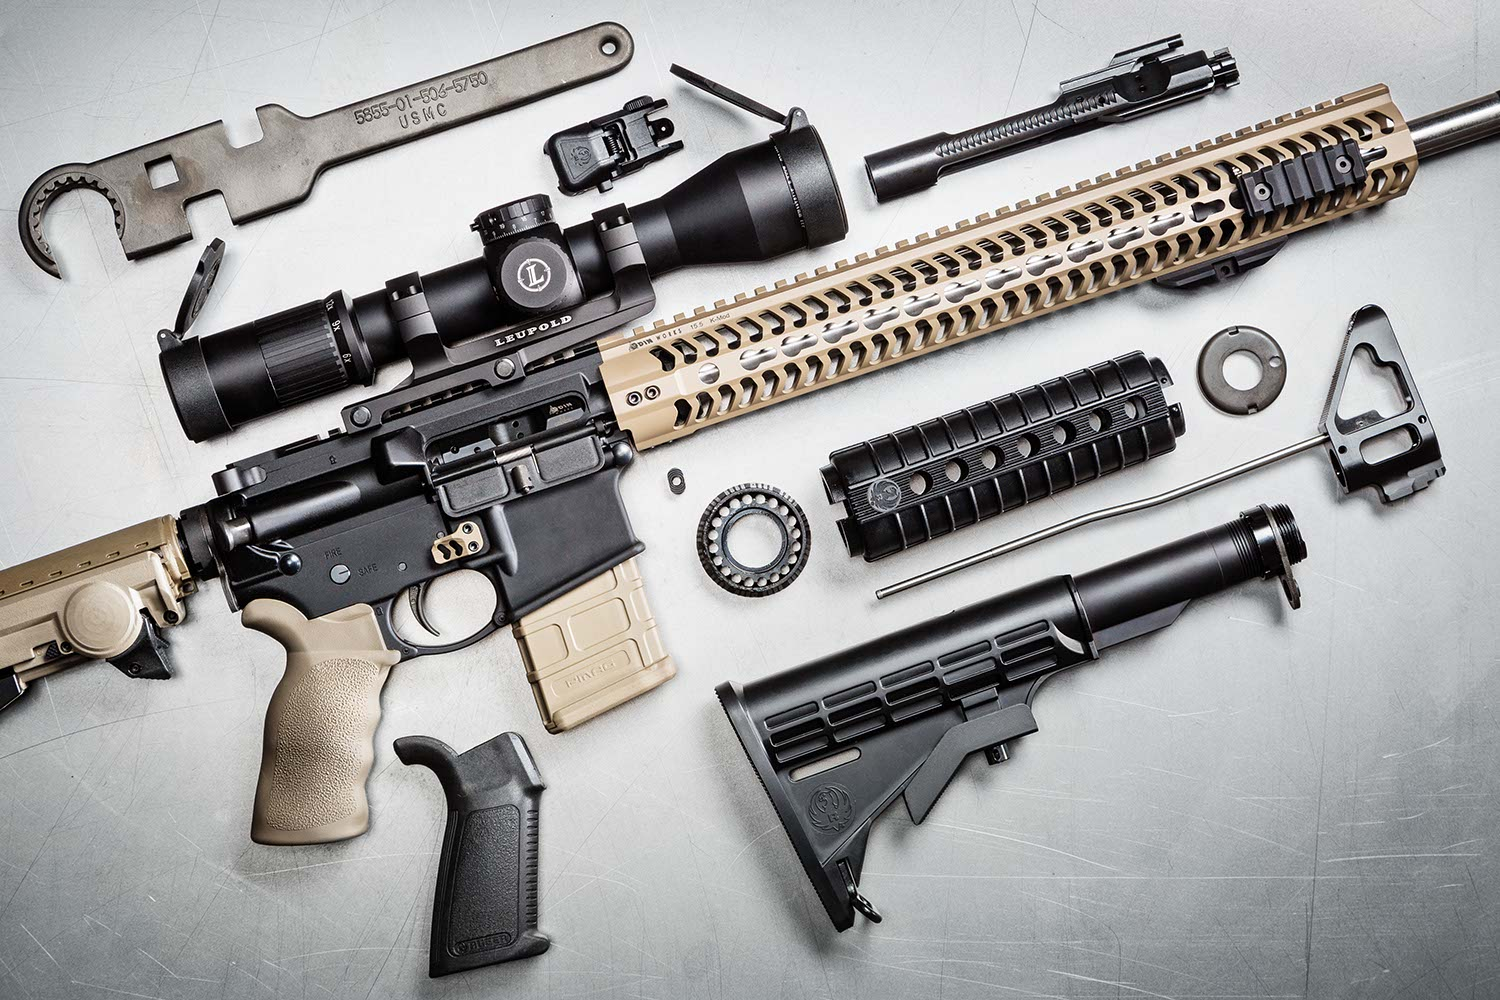 WHY THE AR-15 IS THE GREATEST RIFLE EVER